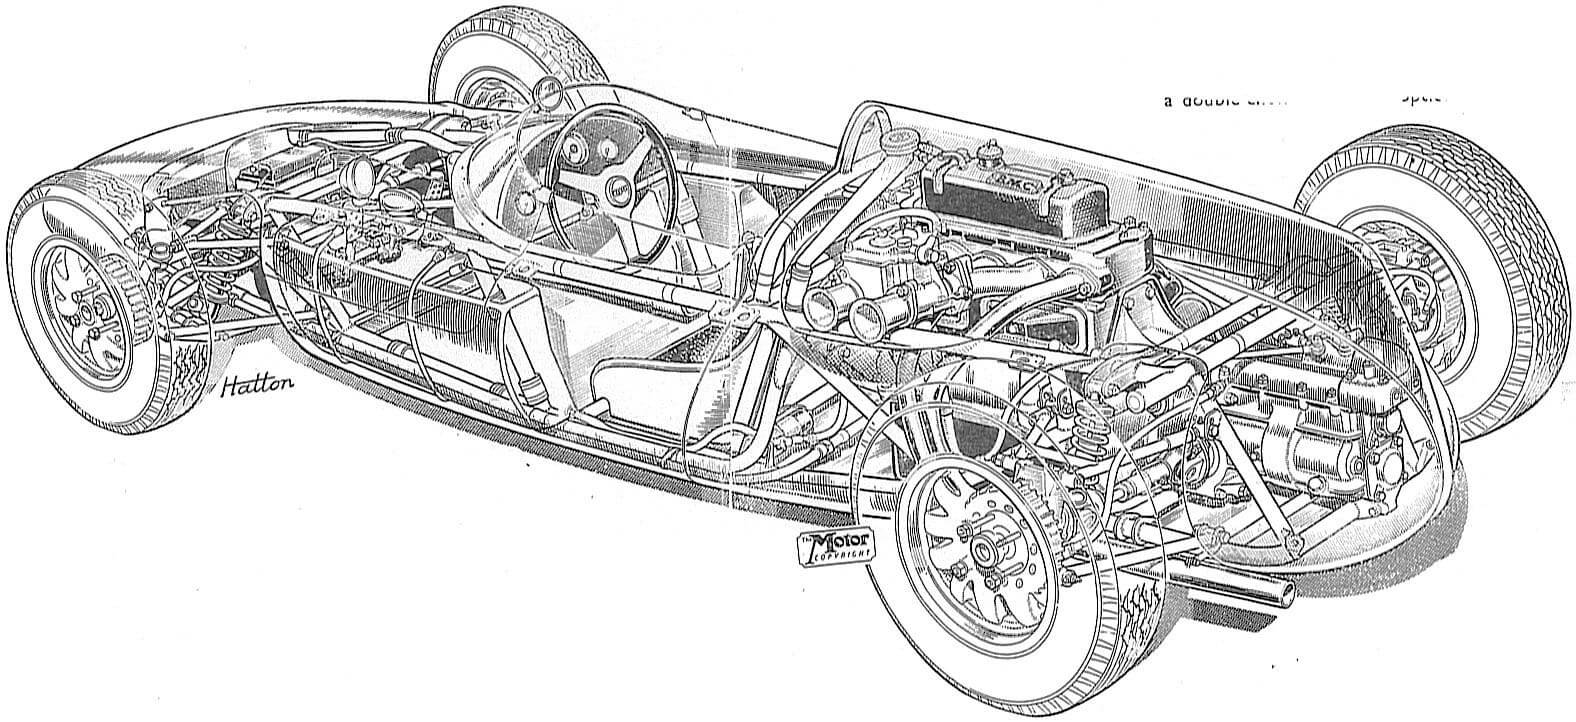 1961 Mk2 T56 Original Specification